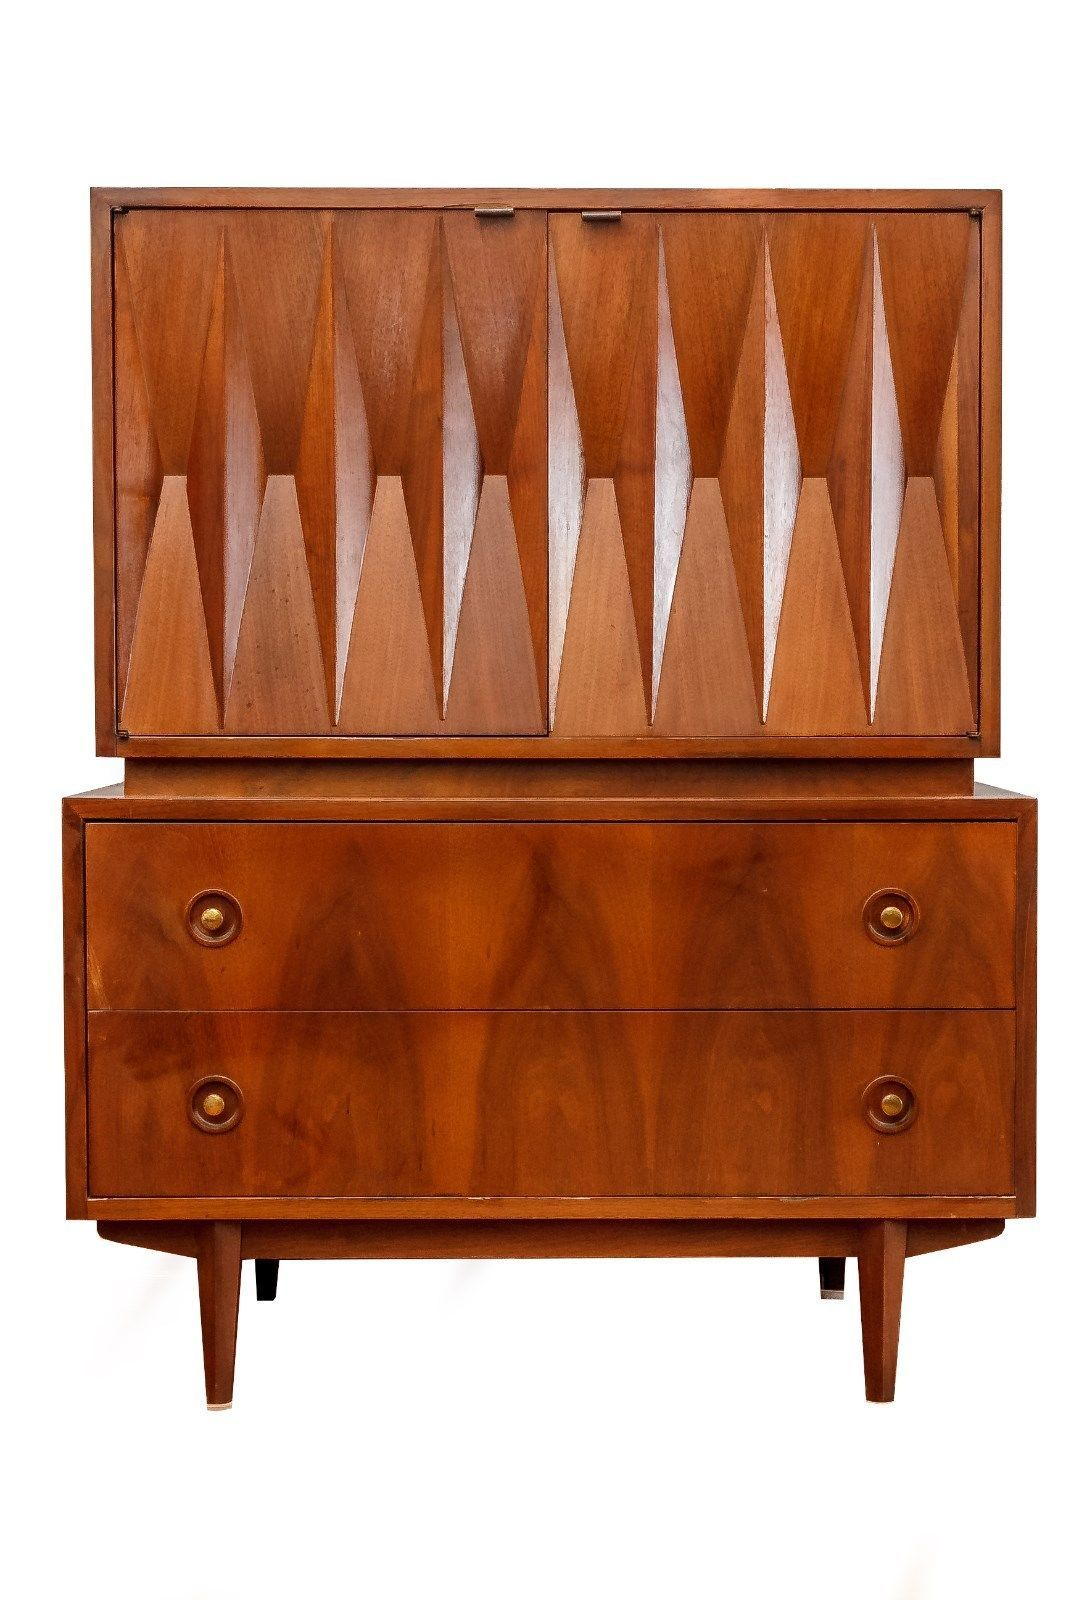 albert parvin attributed walnut cabinet by american of martinsville mid century meuble annee 50